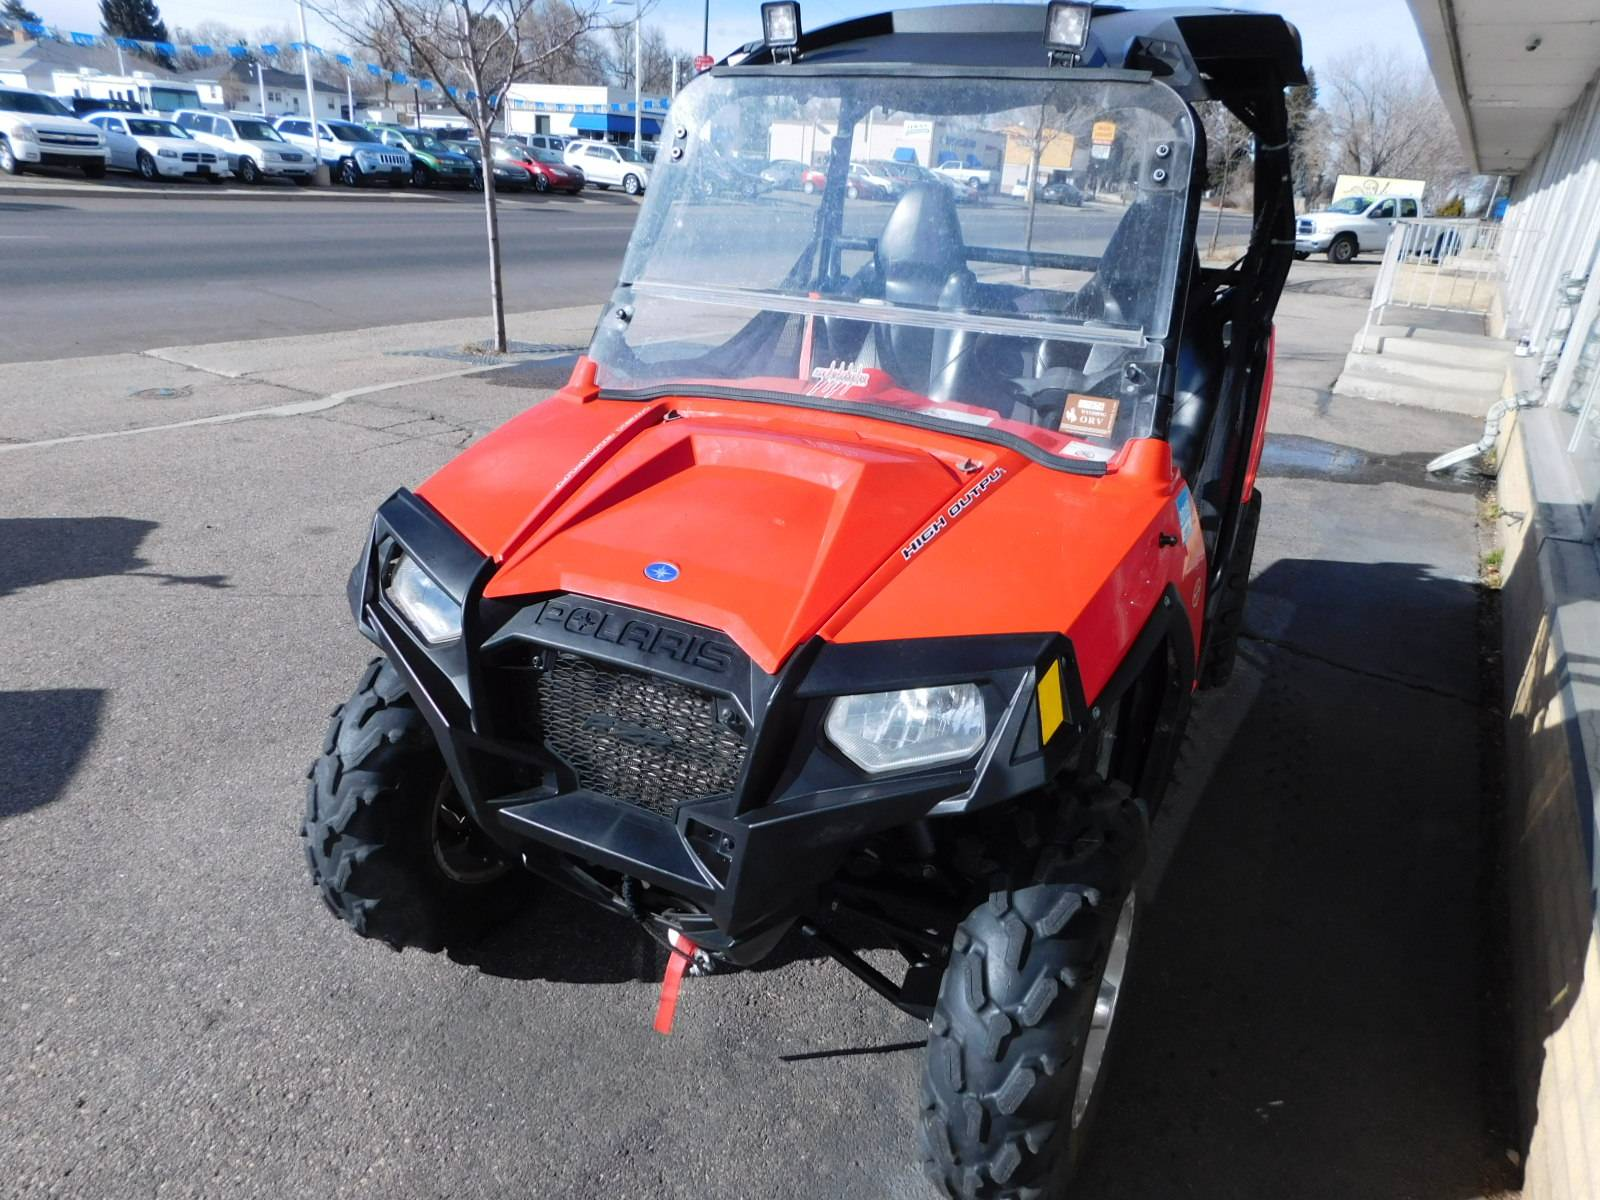 2013 Polaris RZR® 800 in Loveland, Colorado - Photo 12